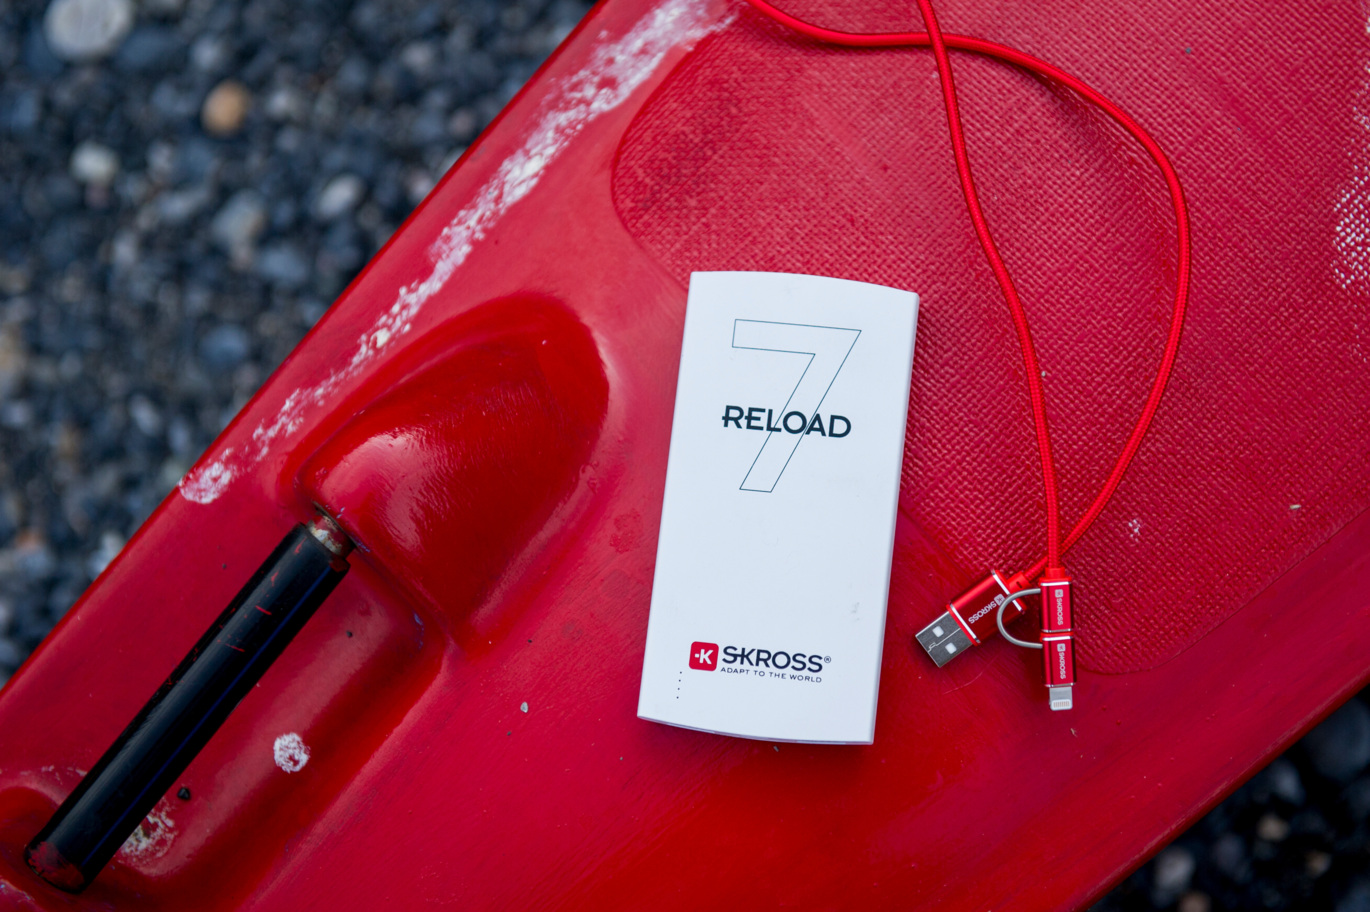 RELOAD 7, 2in1 Charge'n Sync - Special Edition, red